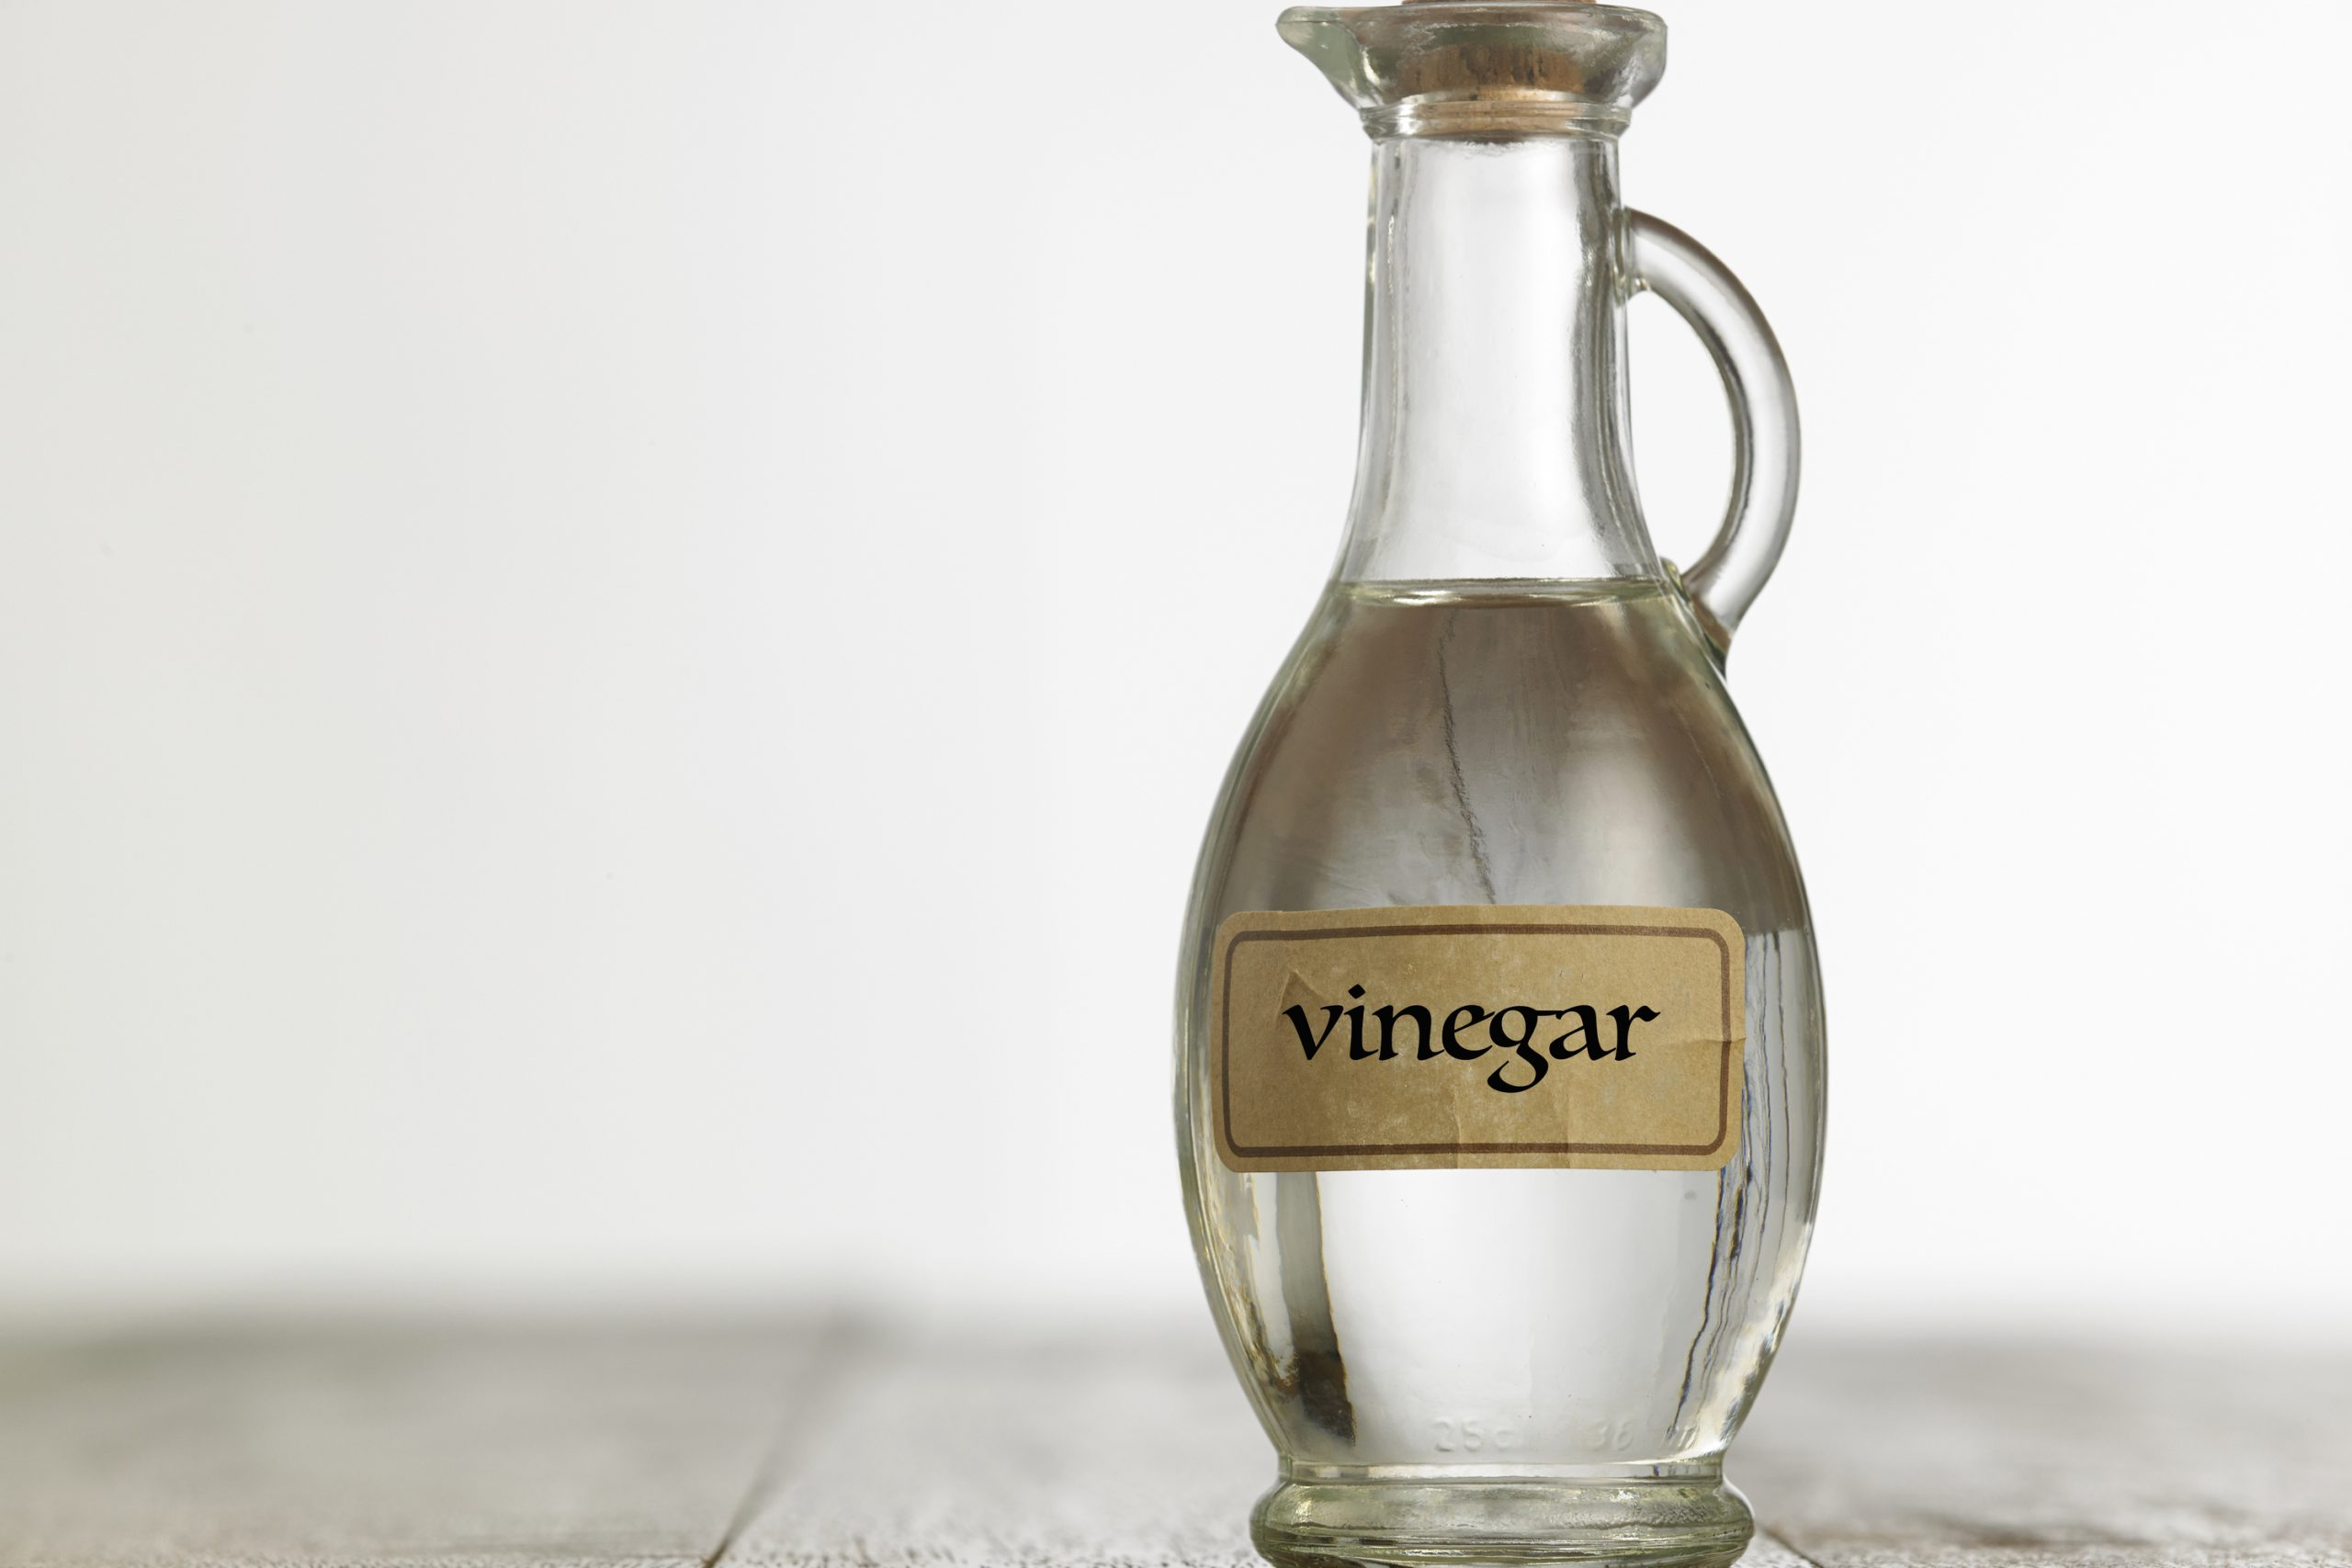 Do you try to use natural cleaning products as much as possible? Do you know that vinegar alone can clean your toilet? See what other uses vinegar has around your home.